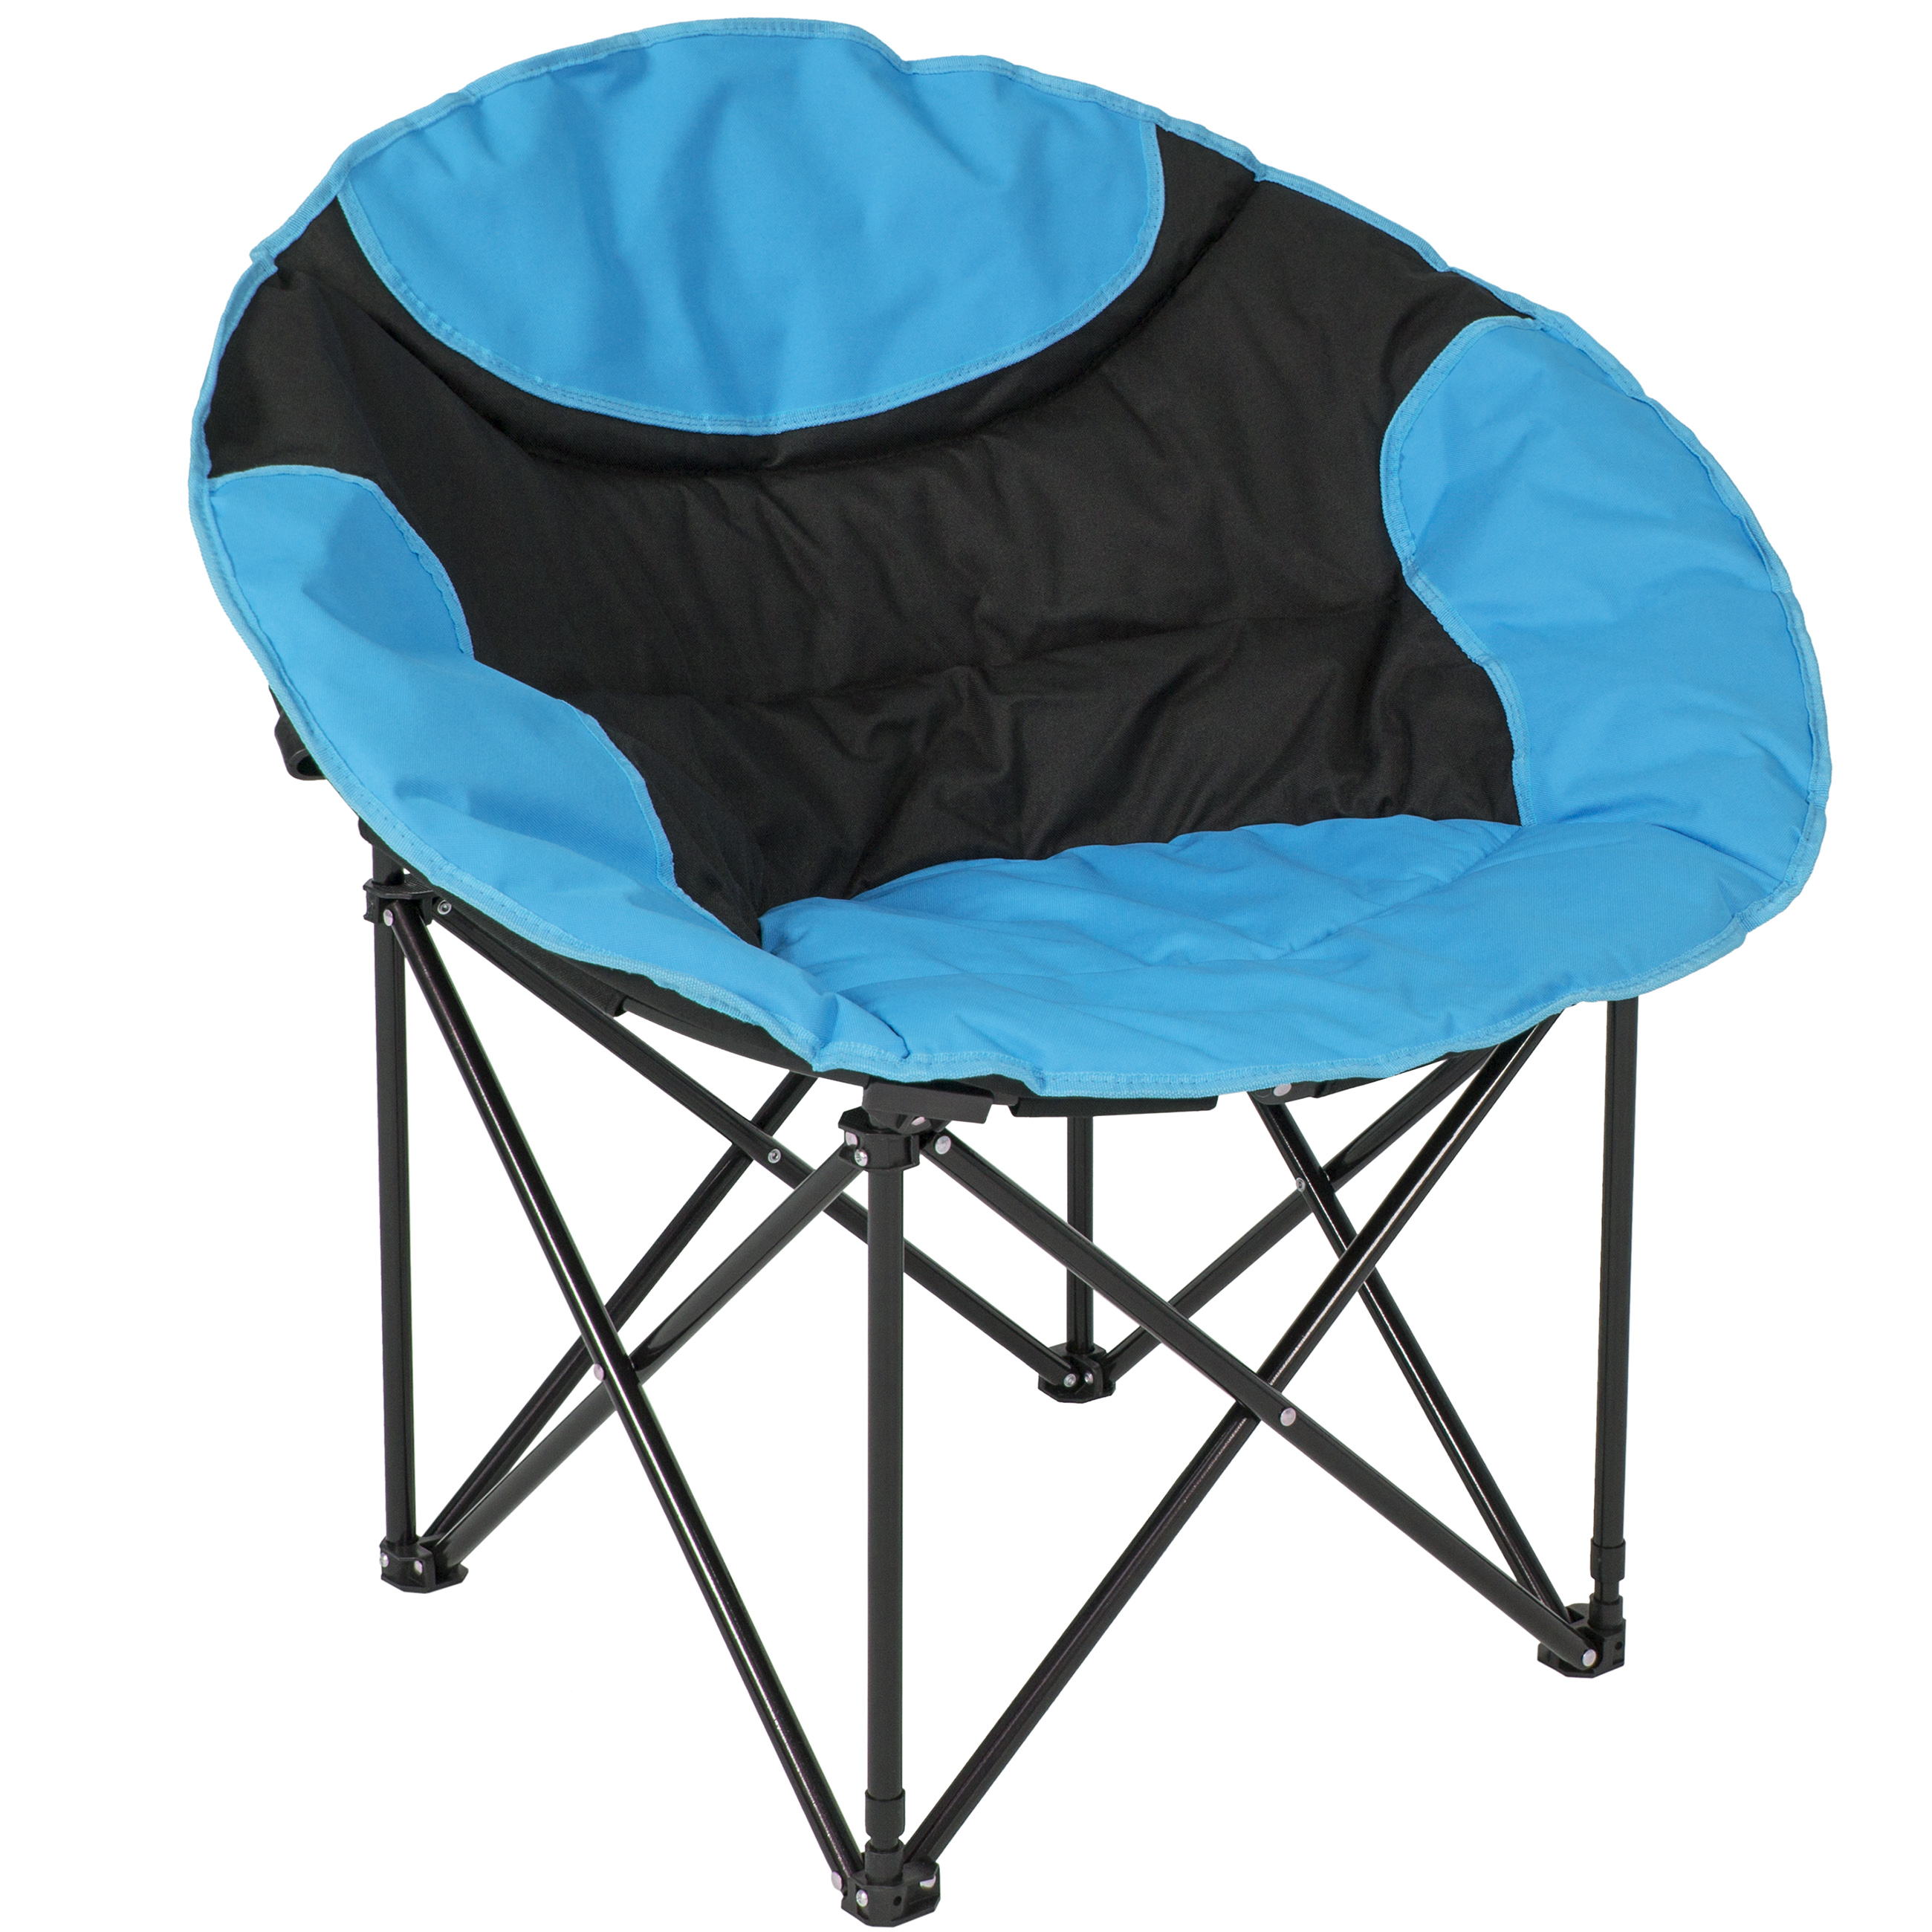 Best Choice Products Outdoor Foldable Lightweight Camping Sports Chair w/ Large Pocket, Carrying Bag - Blue